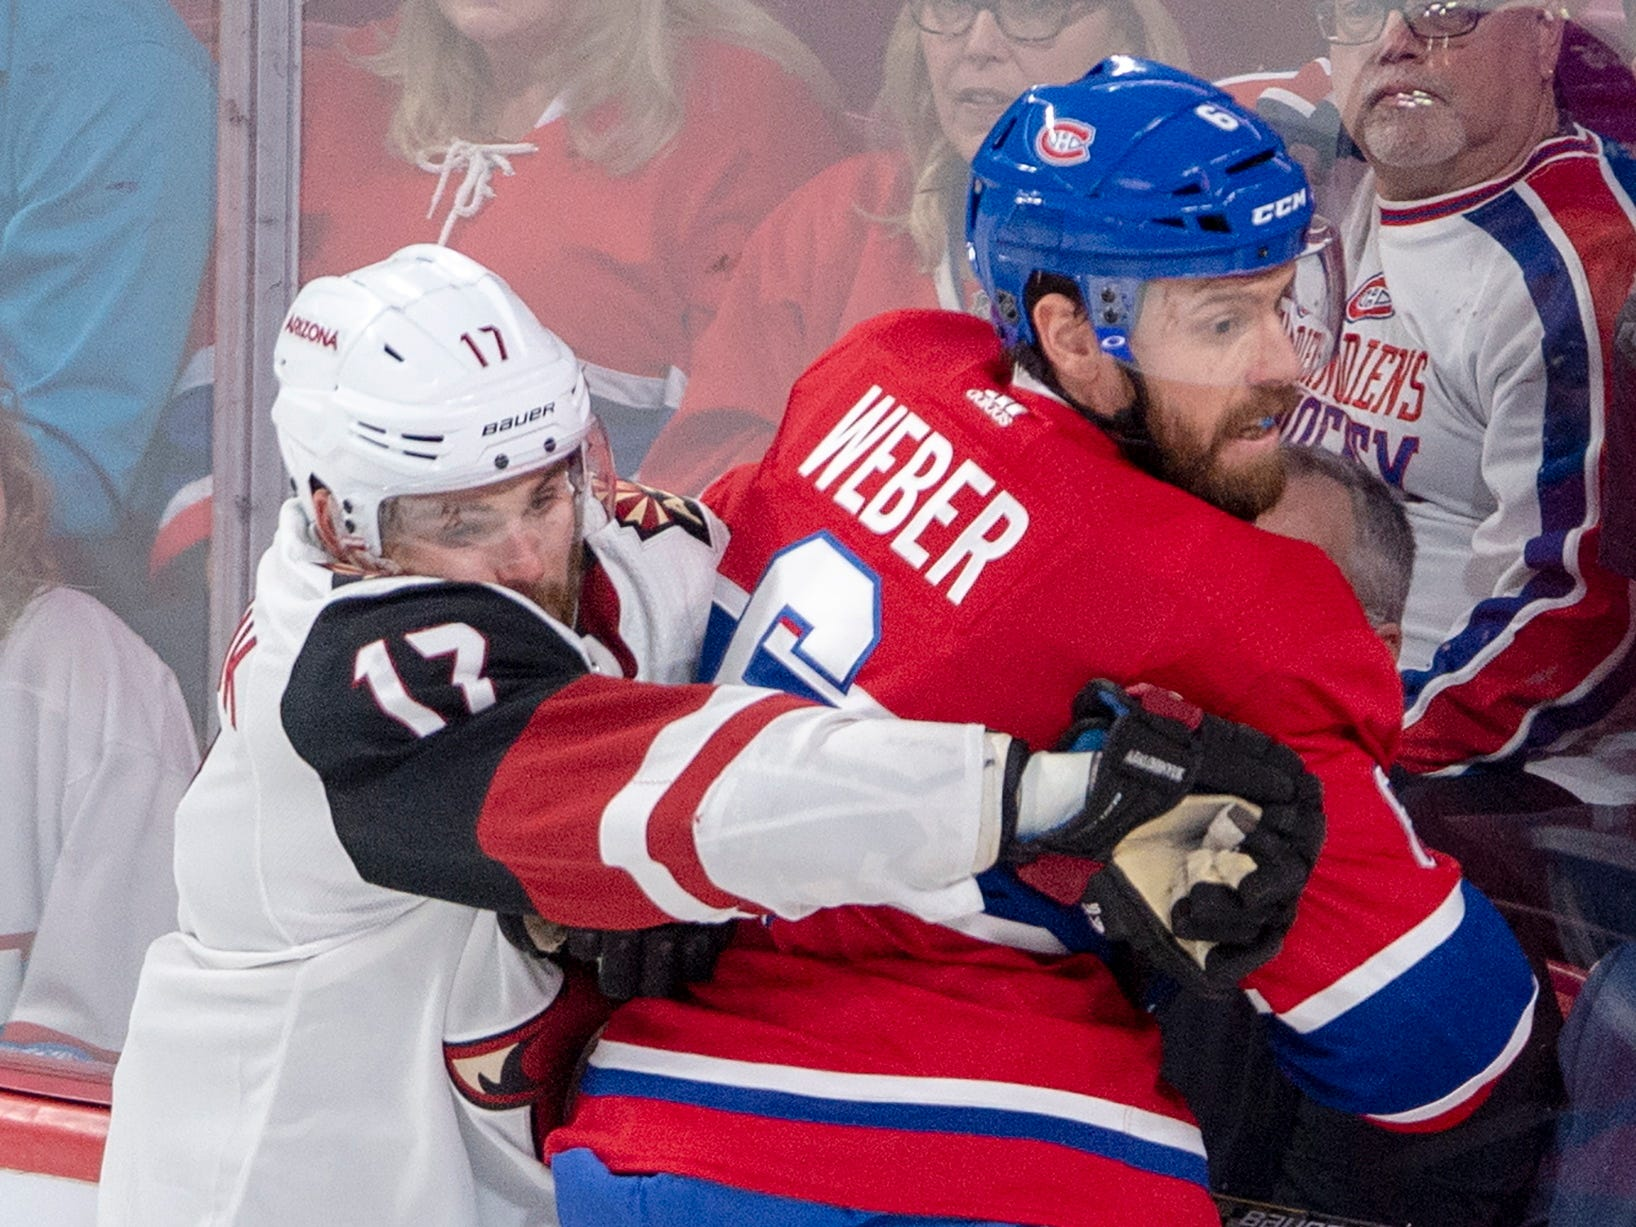 Arizona Coyotes center Alex Galchenyuk (17) checks Montreal Canadiens defenseman Shea Weber (6) into the boards during the first period of an NHL hockey game Wednesday, Jan. 23, 2019, in Montreal.